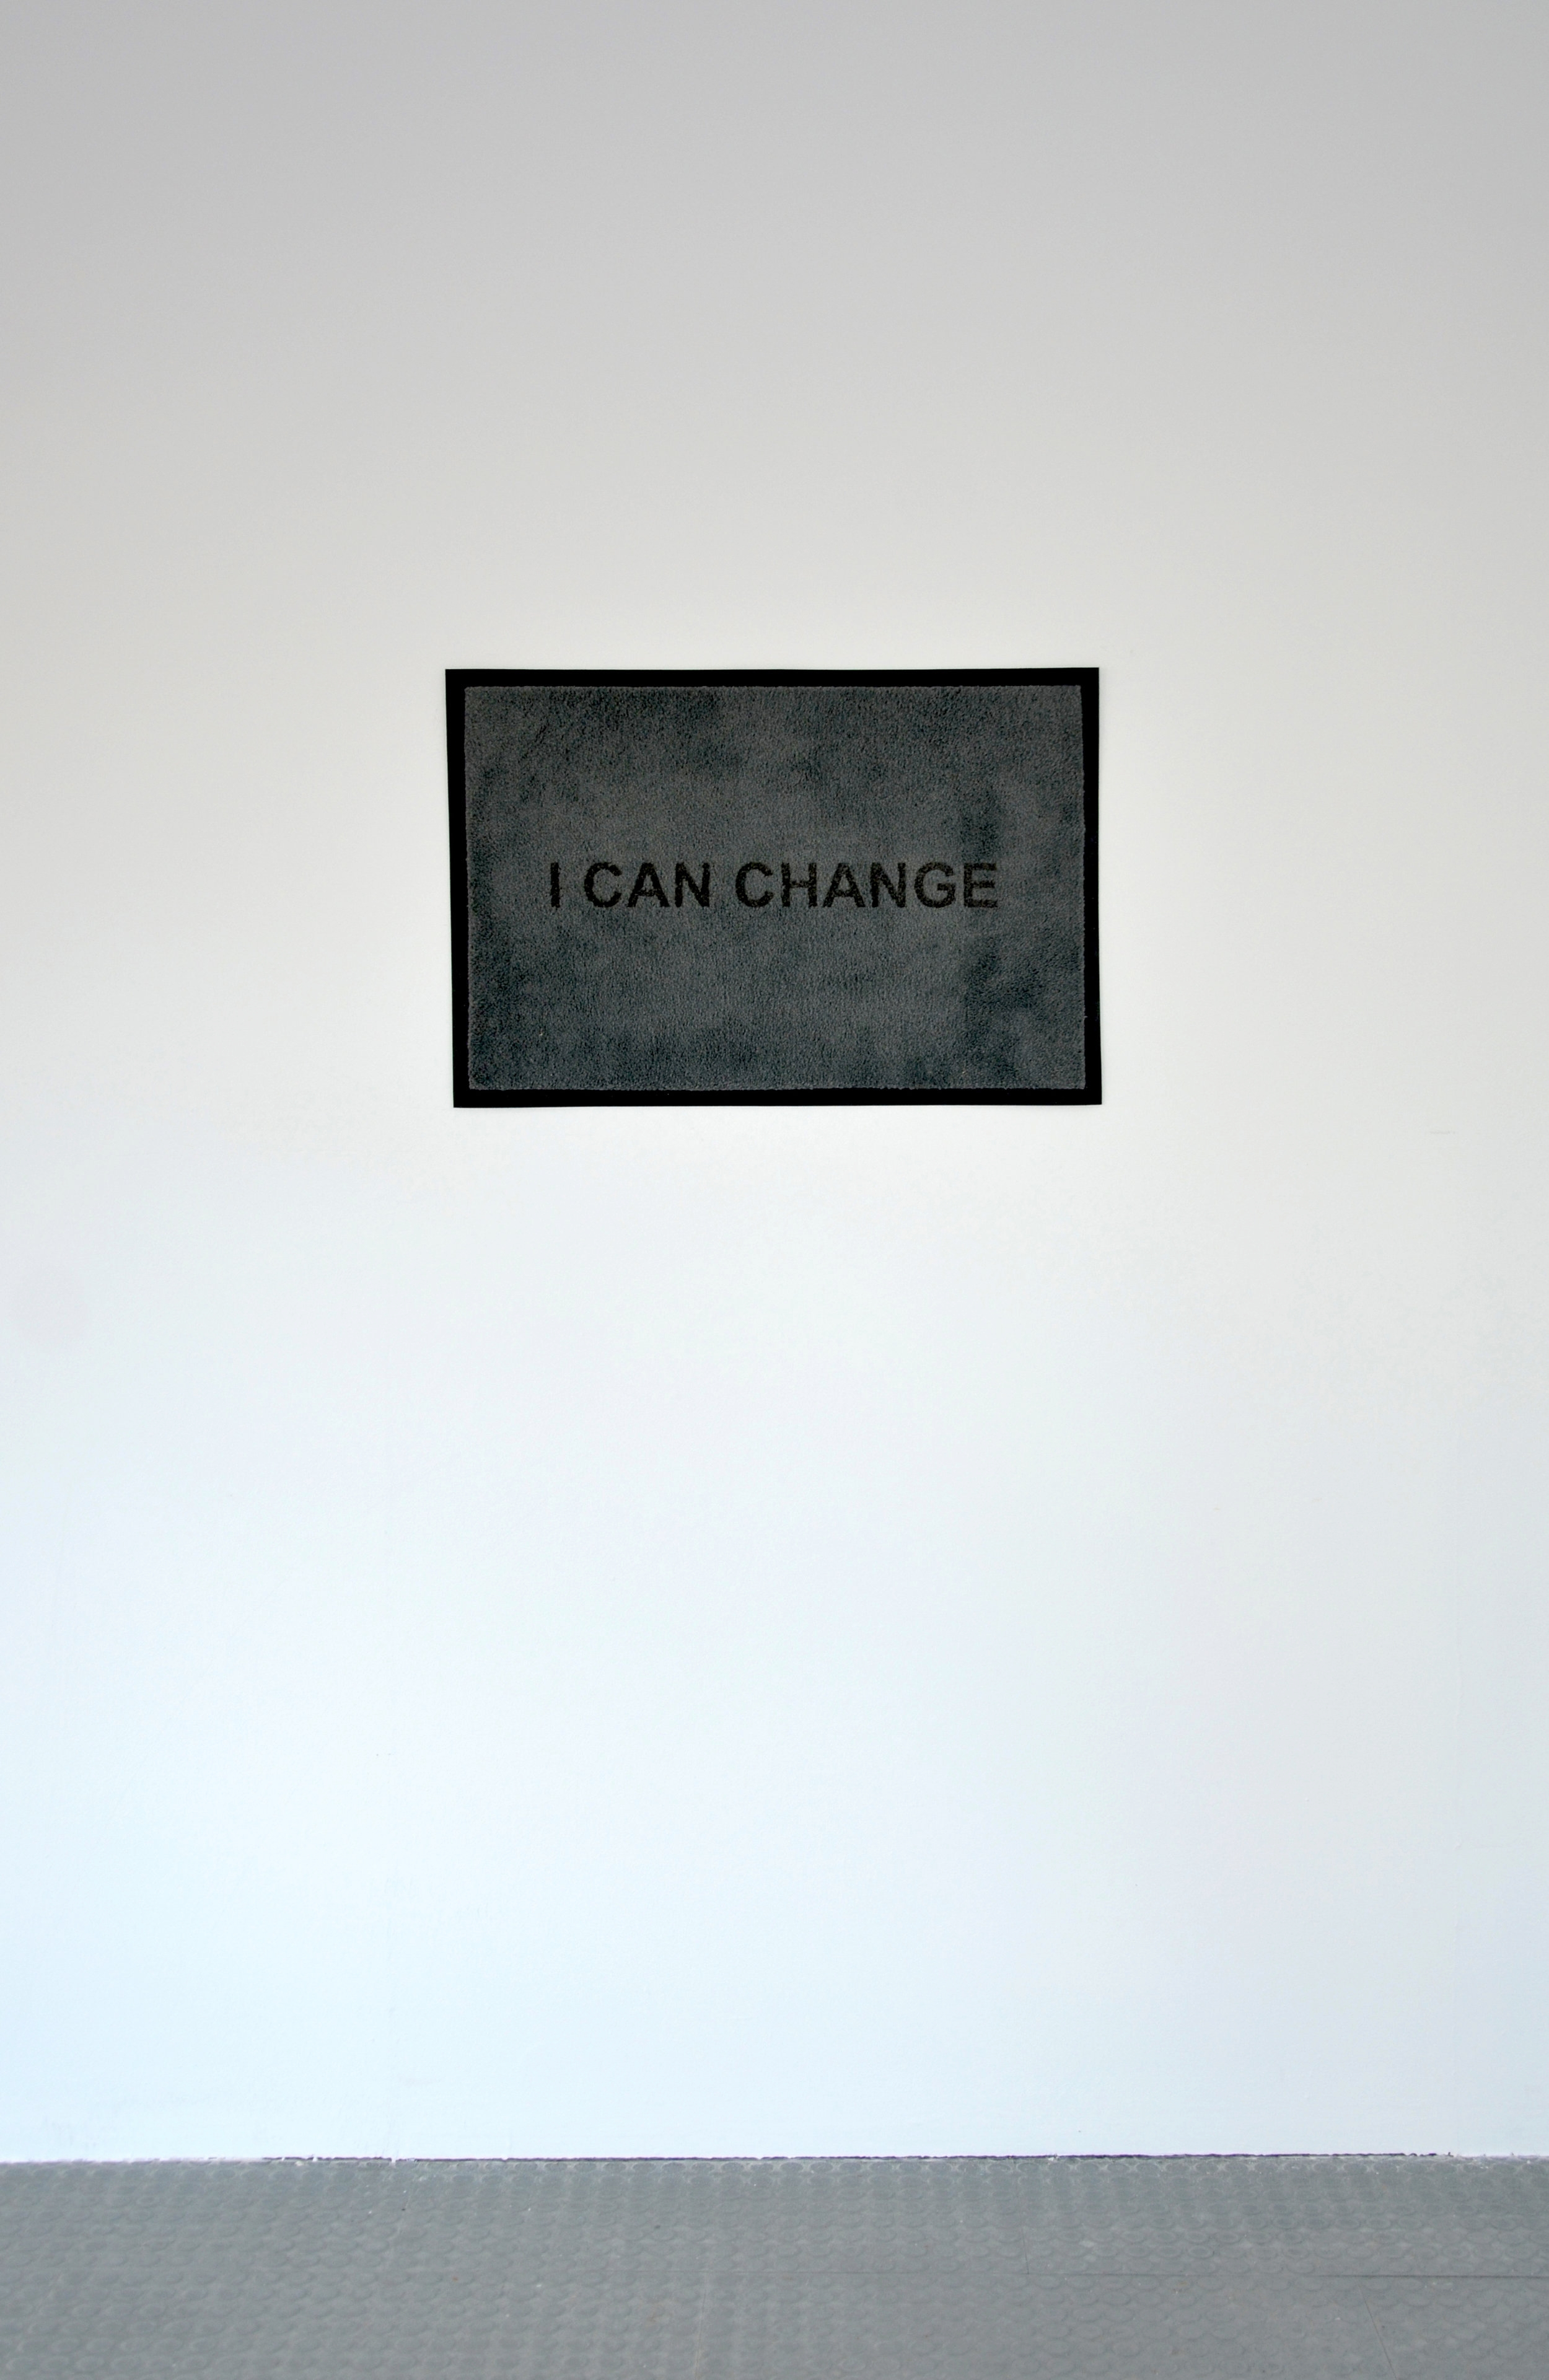 I Can Change, Doormat, 2018. Courtesy of Wright & Vandame.